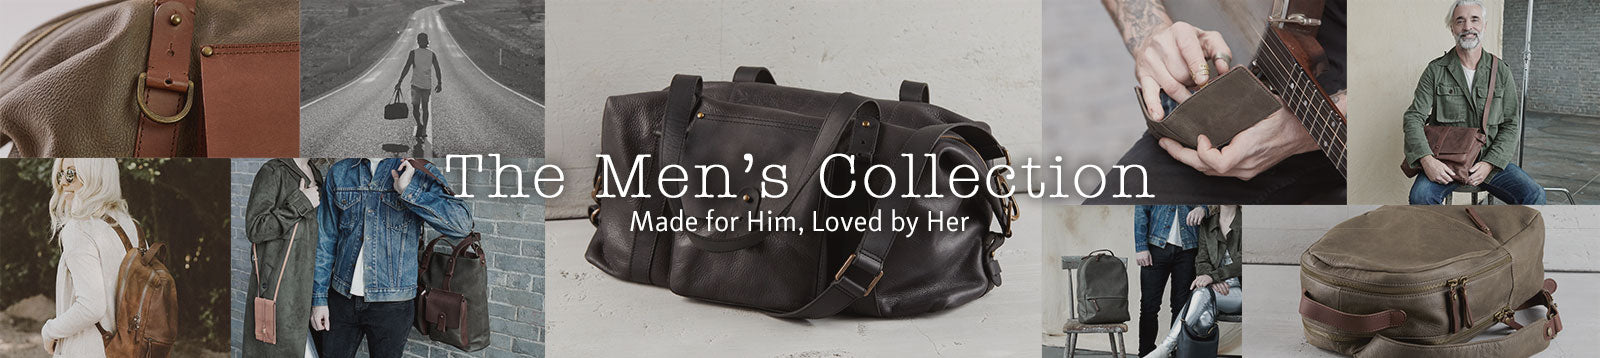 Leather bags and wallets for Men